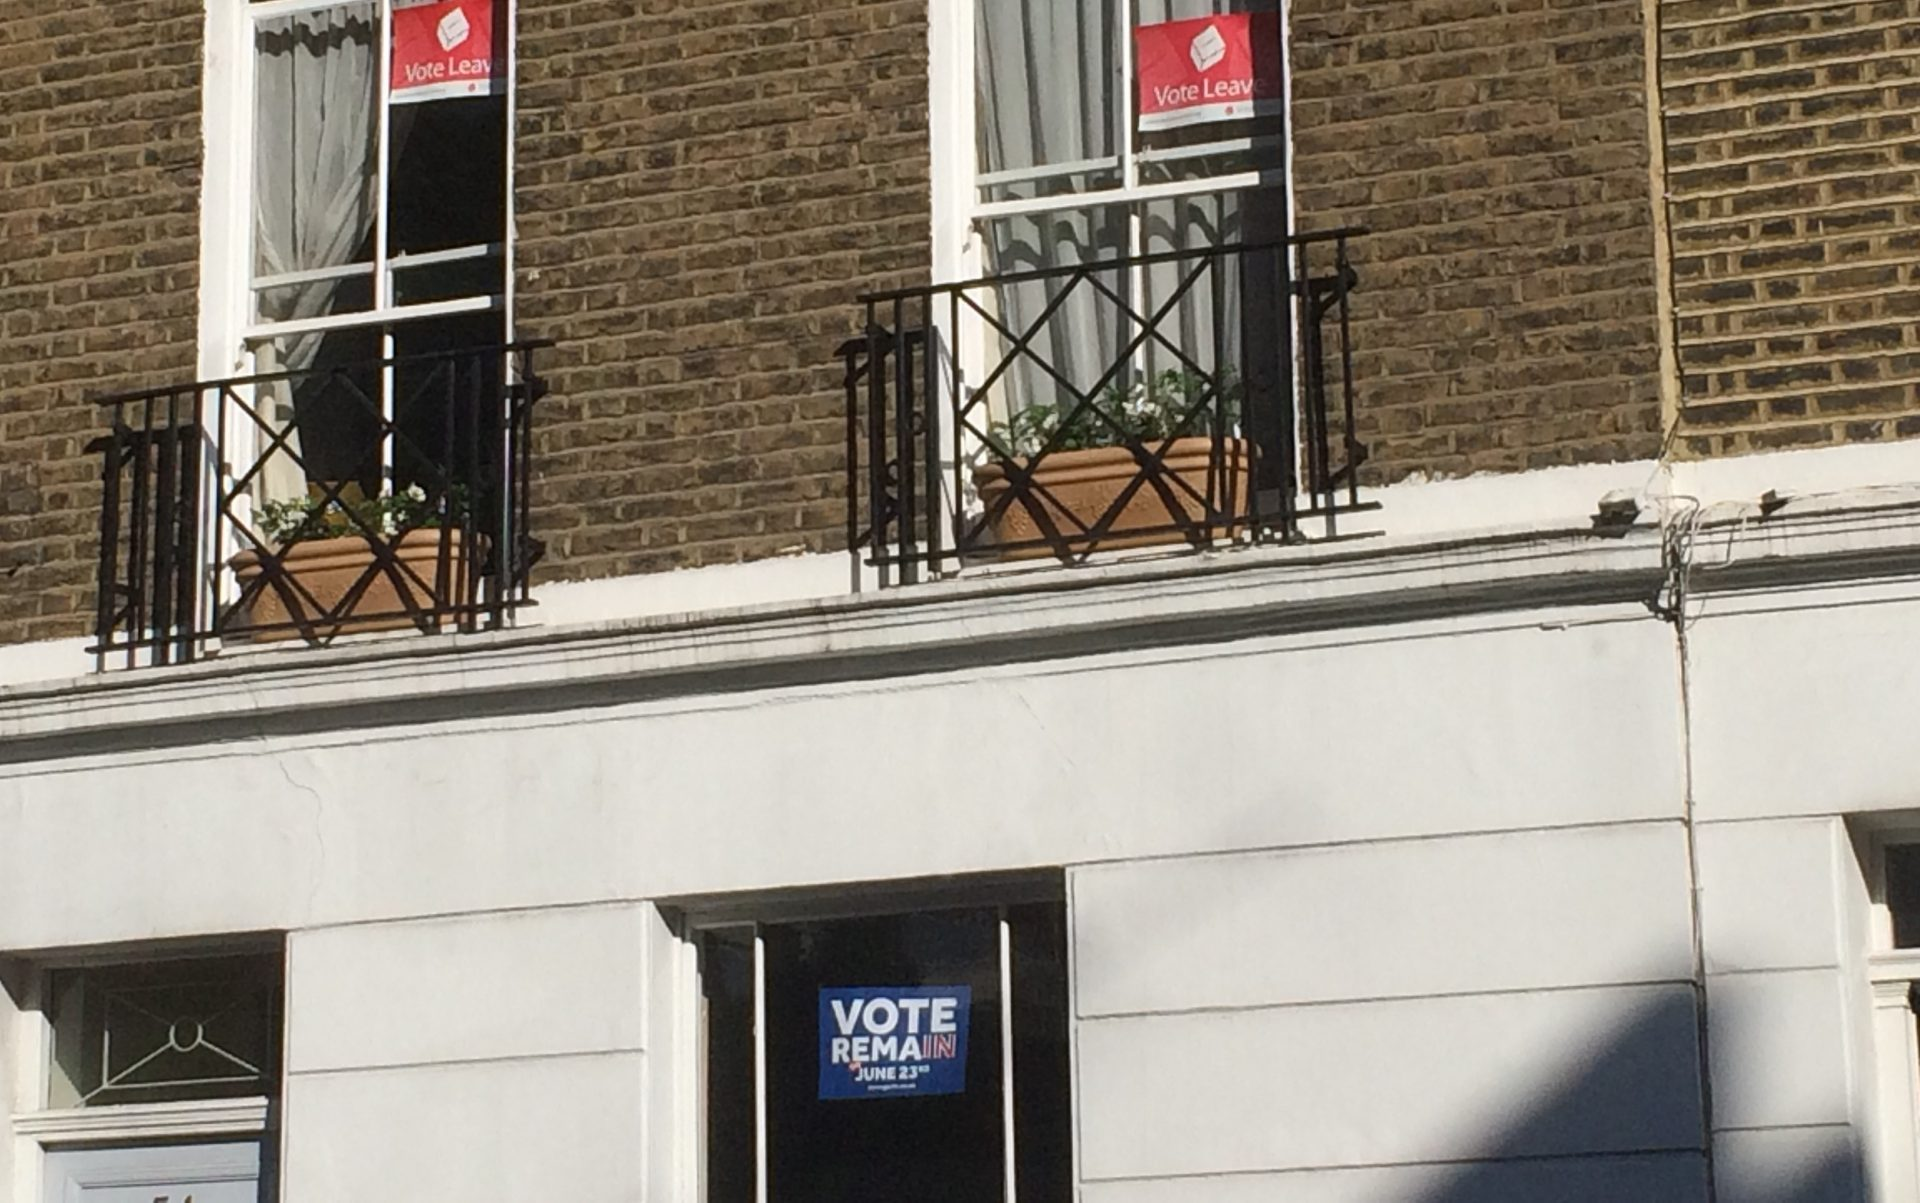 Cameron Vote Leave and Vote Remain posters in Pimlico London Philip Stevens June 16 e1467833954701